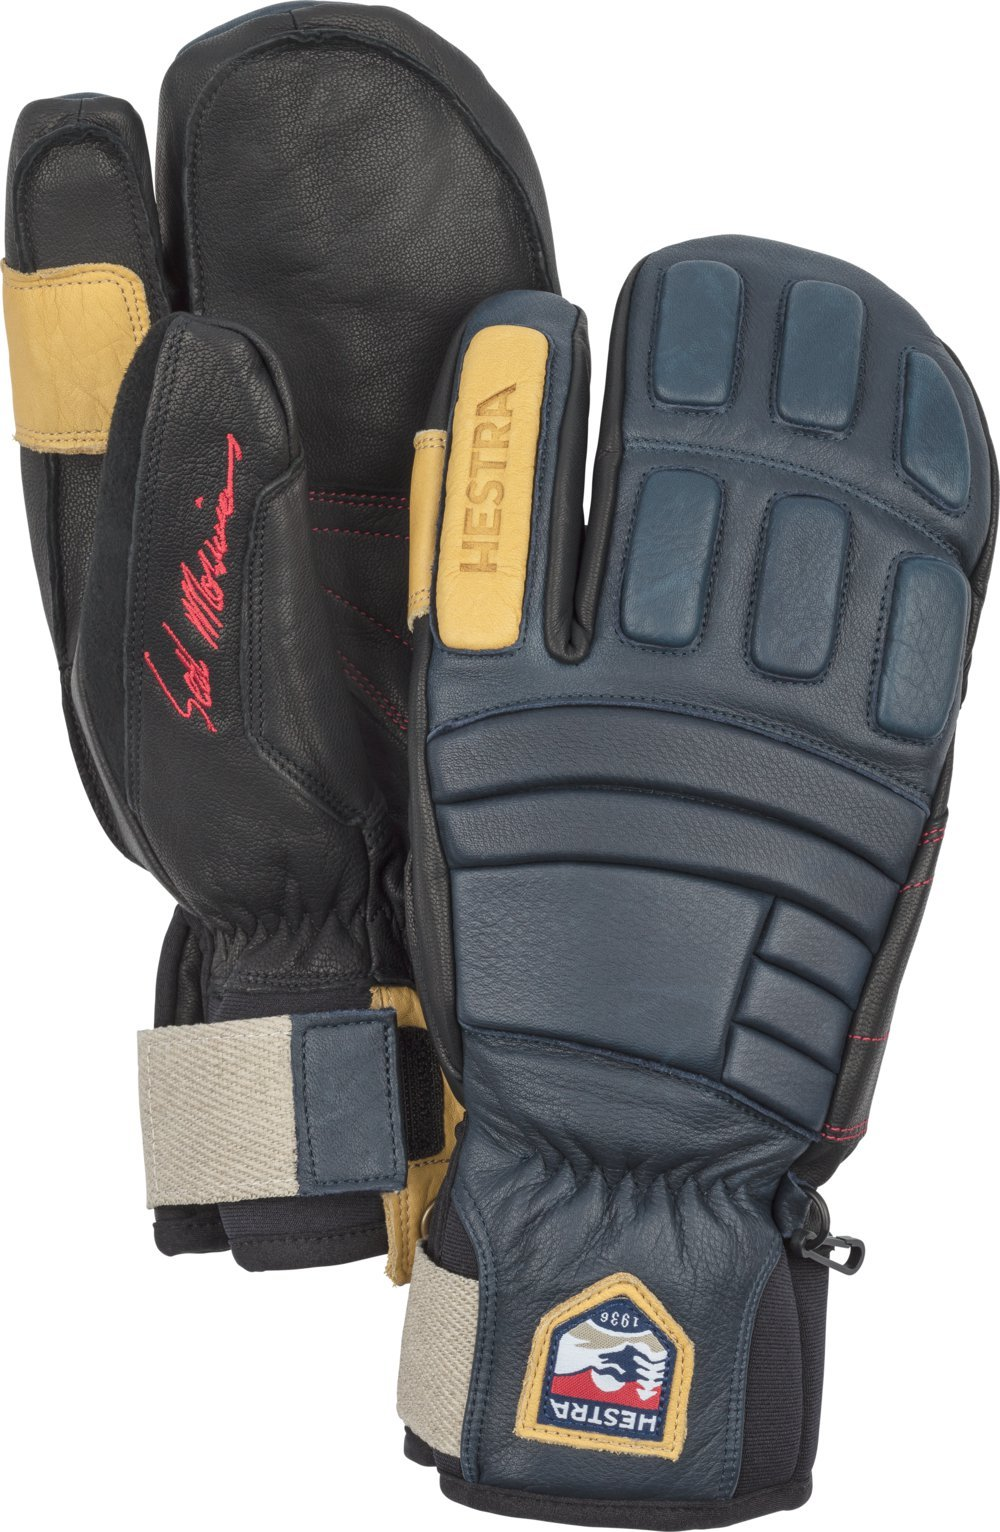 Hestra Waterproof Ski Gloves: Mens and Womens Pro Model Leather Winter 3-Finger Mitten